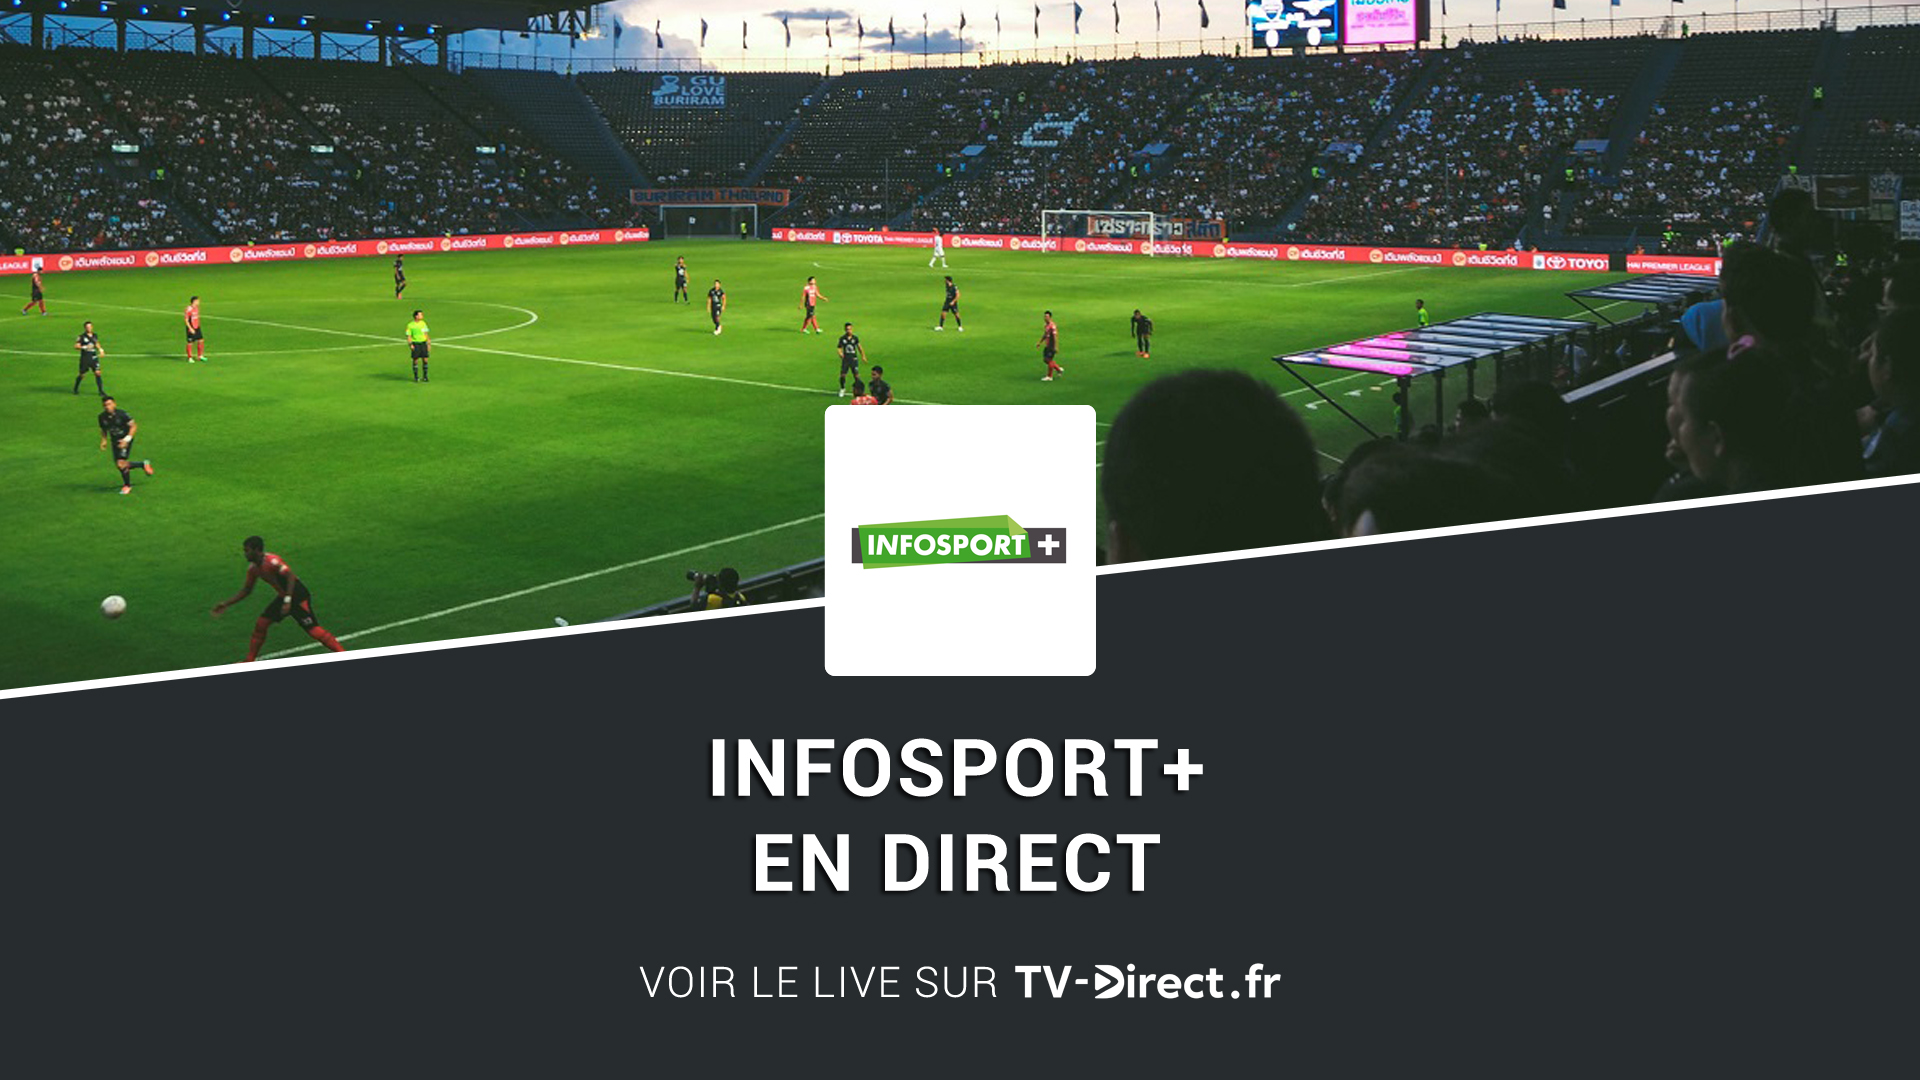 infosport direct regarder infosport en direct live sur internet. Black Bedroom Furniture Sets. Home Design Ideas